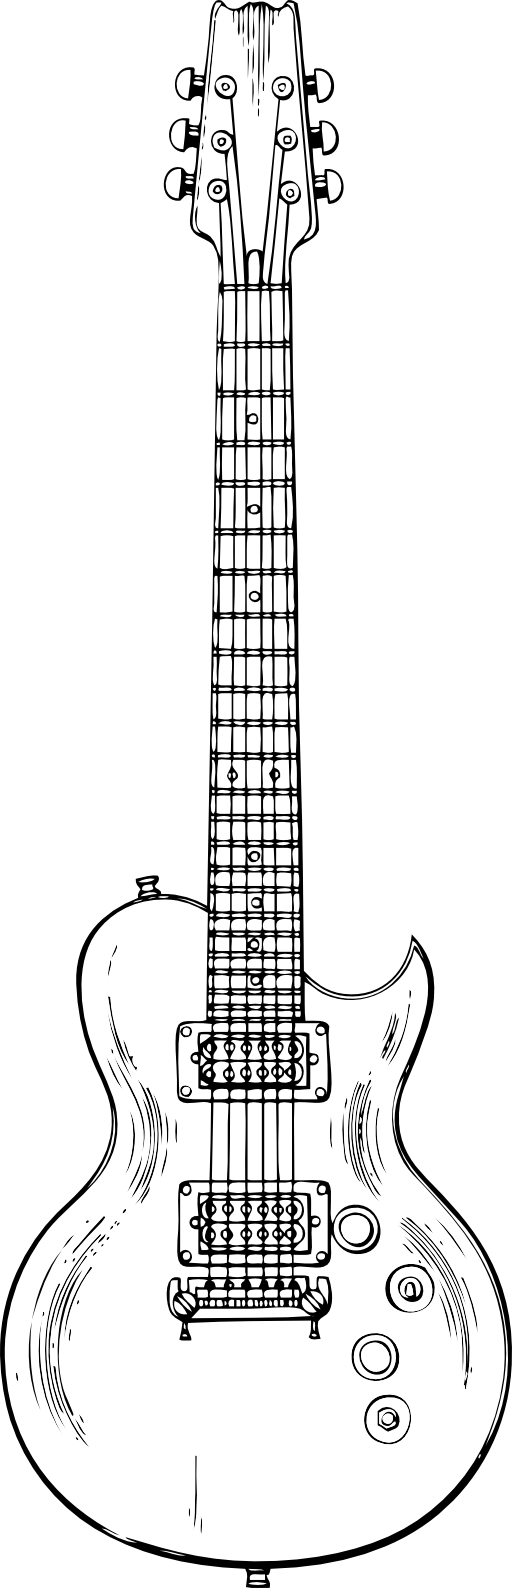 Electric i royalty free. Clipart guitar public domain